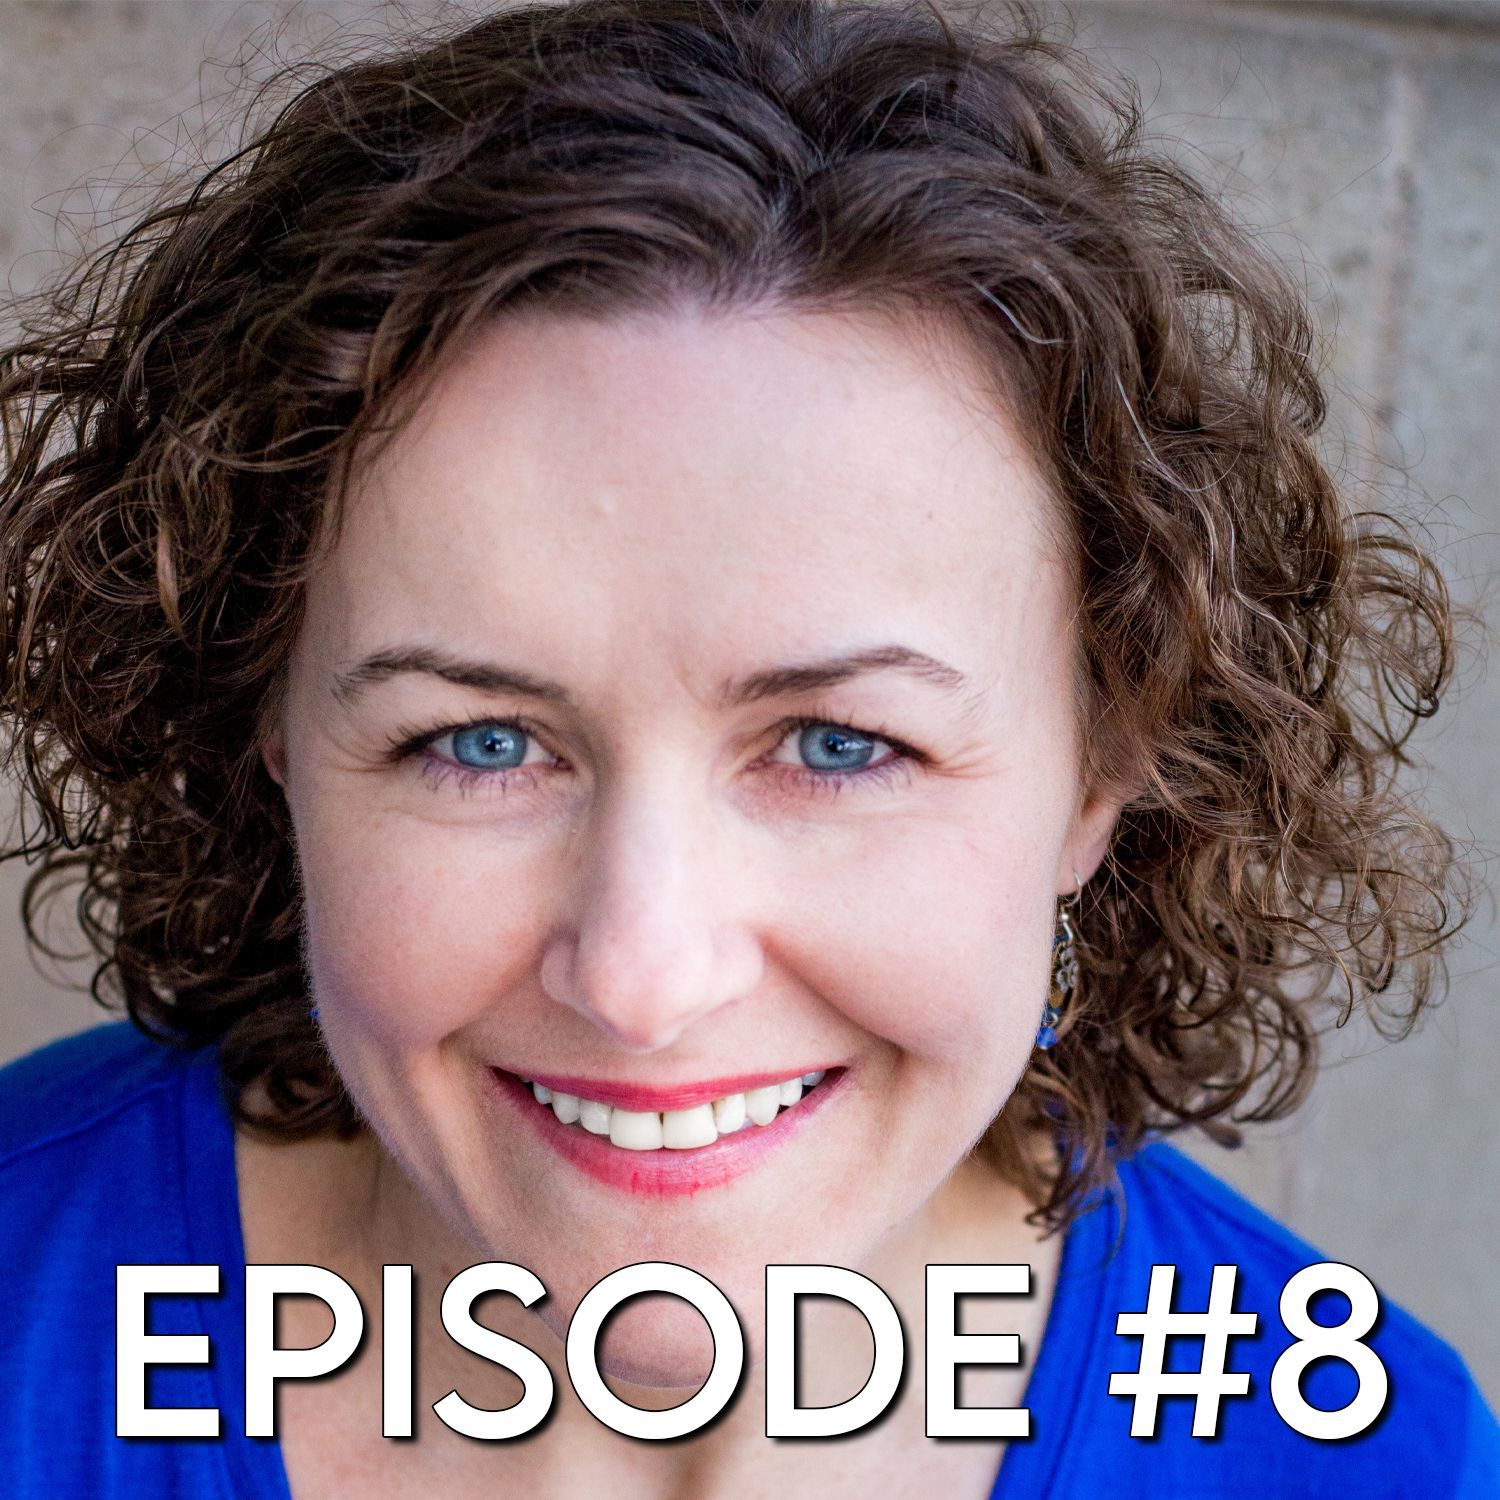 Episode #8 - Lisa Whalen: One Fence at a Time